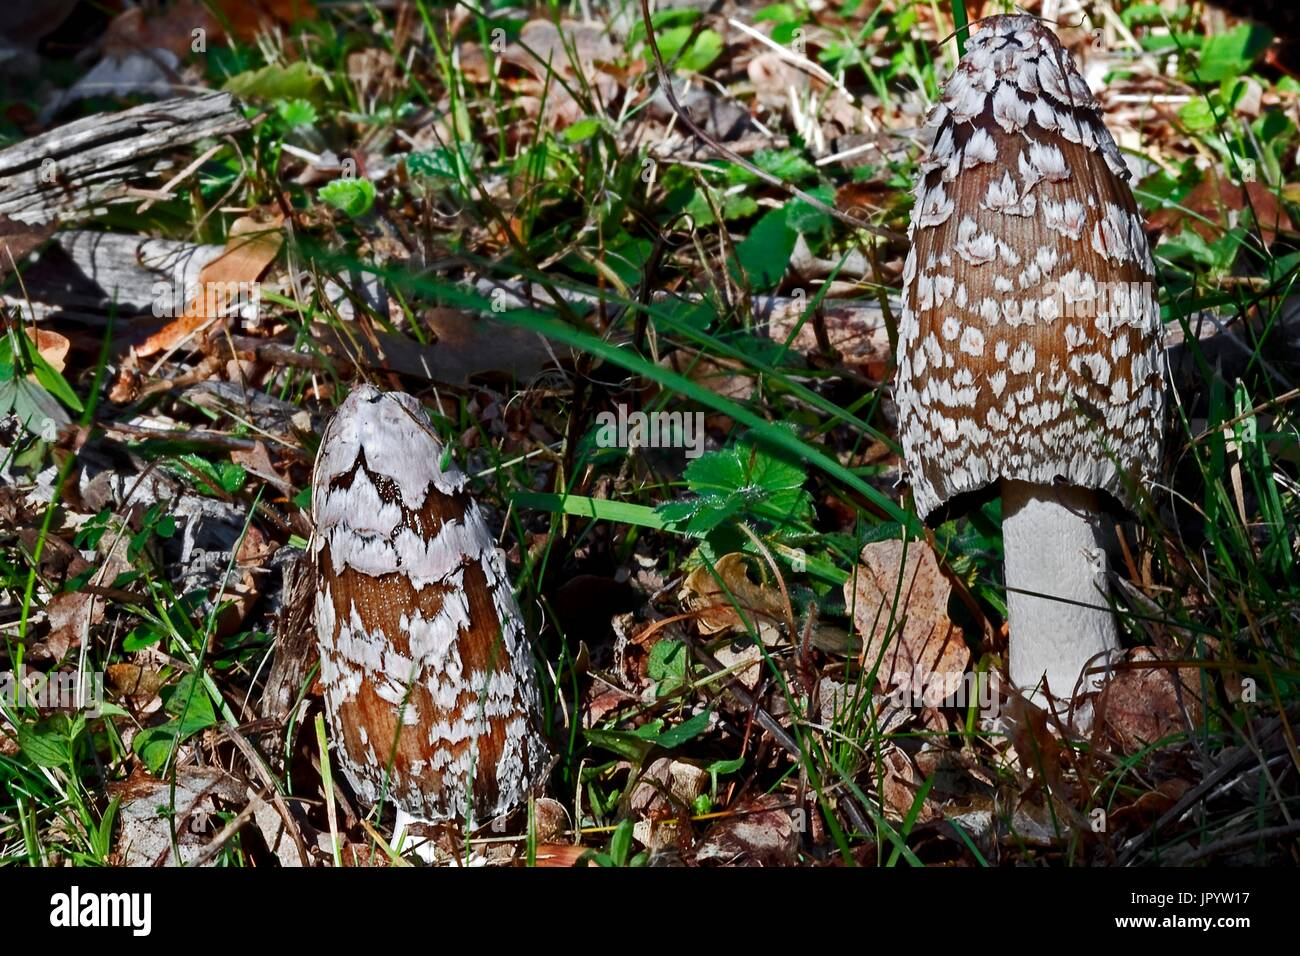 Magpie Inkcap (Coprinus picaceus) in a meadow. Batet. Garrotxa. Girona. Pyrenees. Catalonia. Spain. - Stock Image